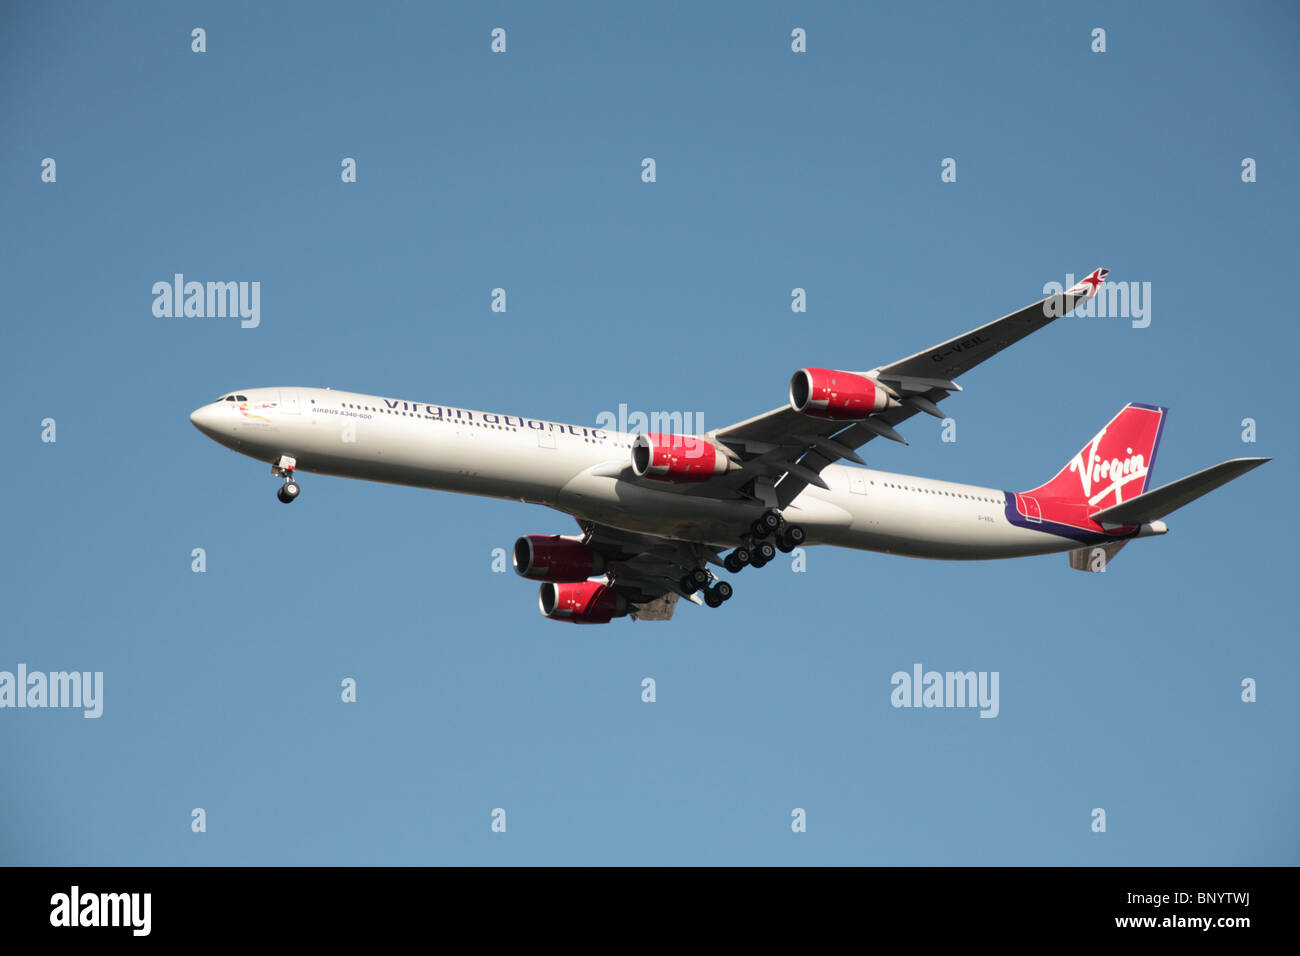 Virgin Atlantic Airbus A340-600 on final approach to Heathrow Airport - Stock Image